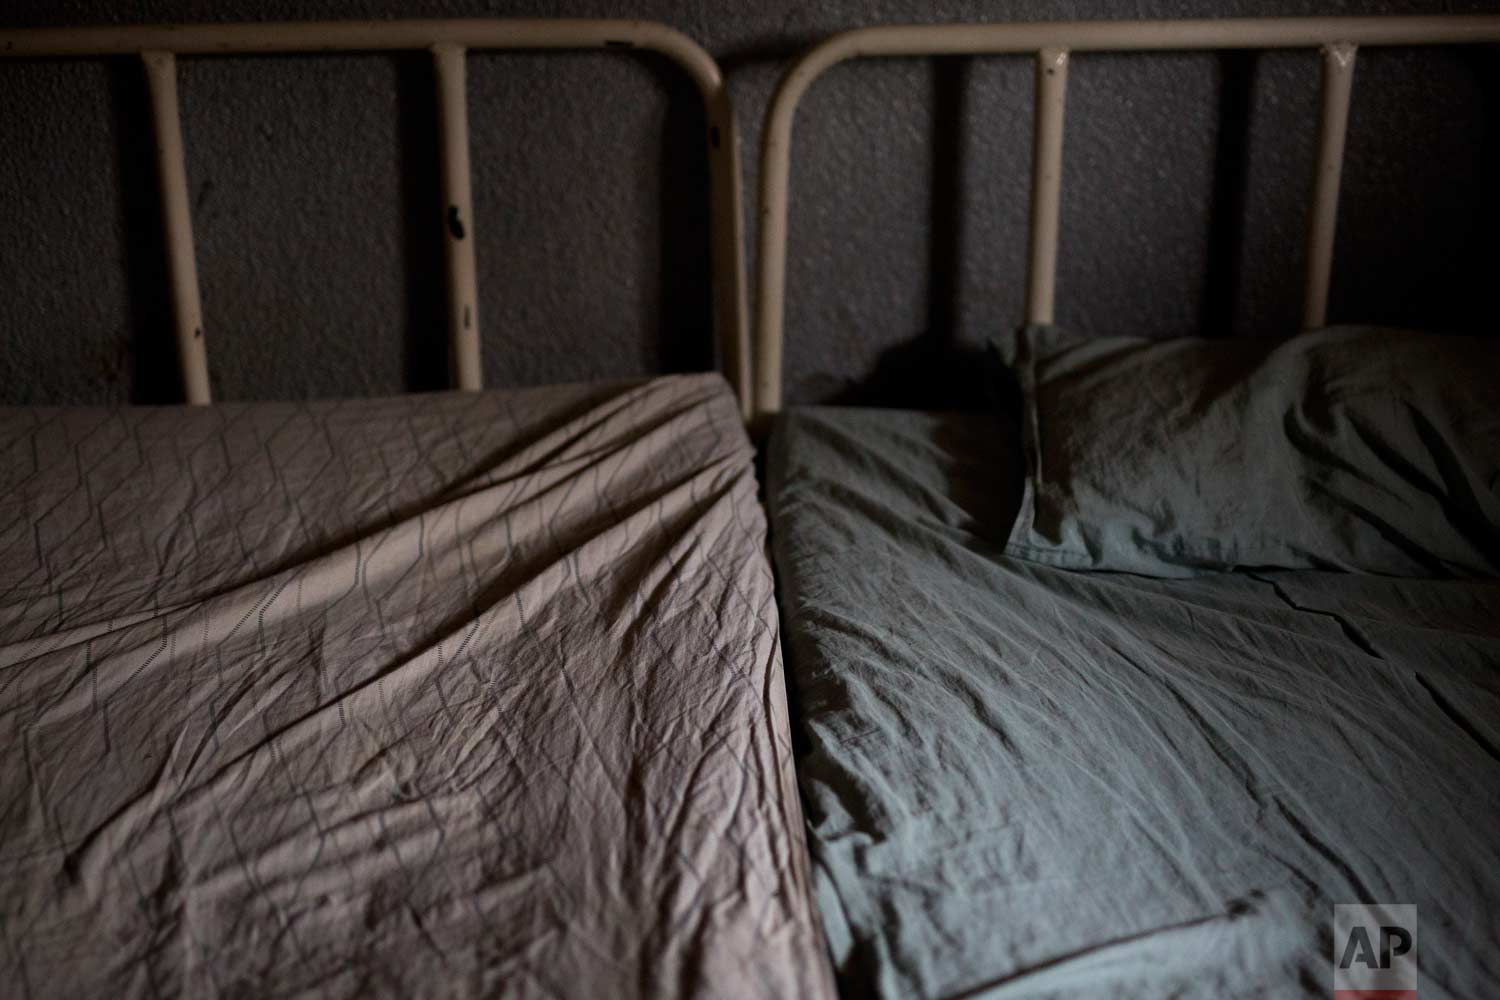 This Tuesday, Aug. 14, 2018 photo shows hospital beds at the Masaidiano Health Center in Lubumbashi, Democratic Republic of the Congo. Many hospitals lack running water and regular electricity and bed shortages are often so severe that two patients must squeeze onto a single mattress. (AP Photo/Jerome Delay)